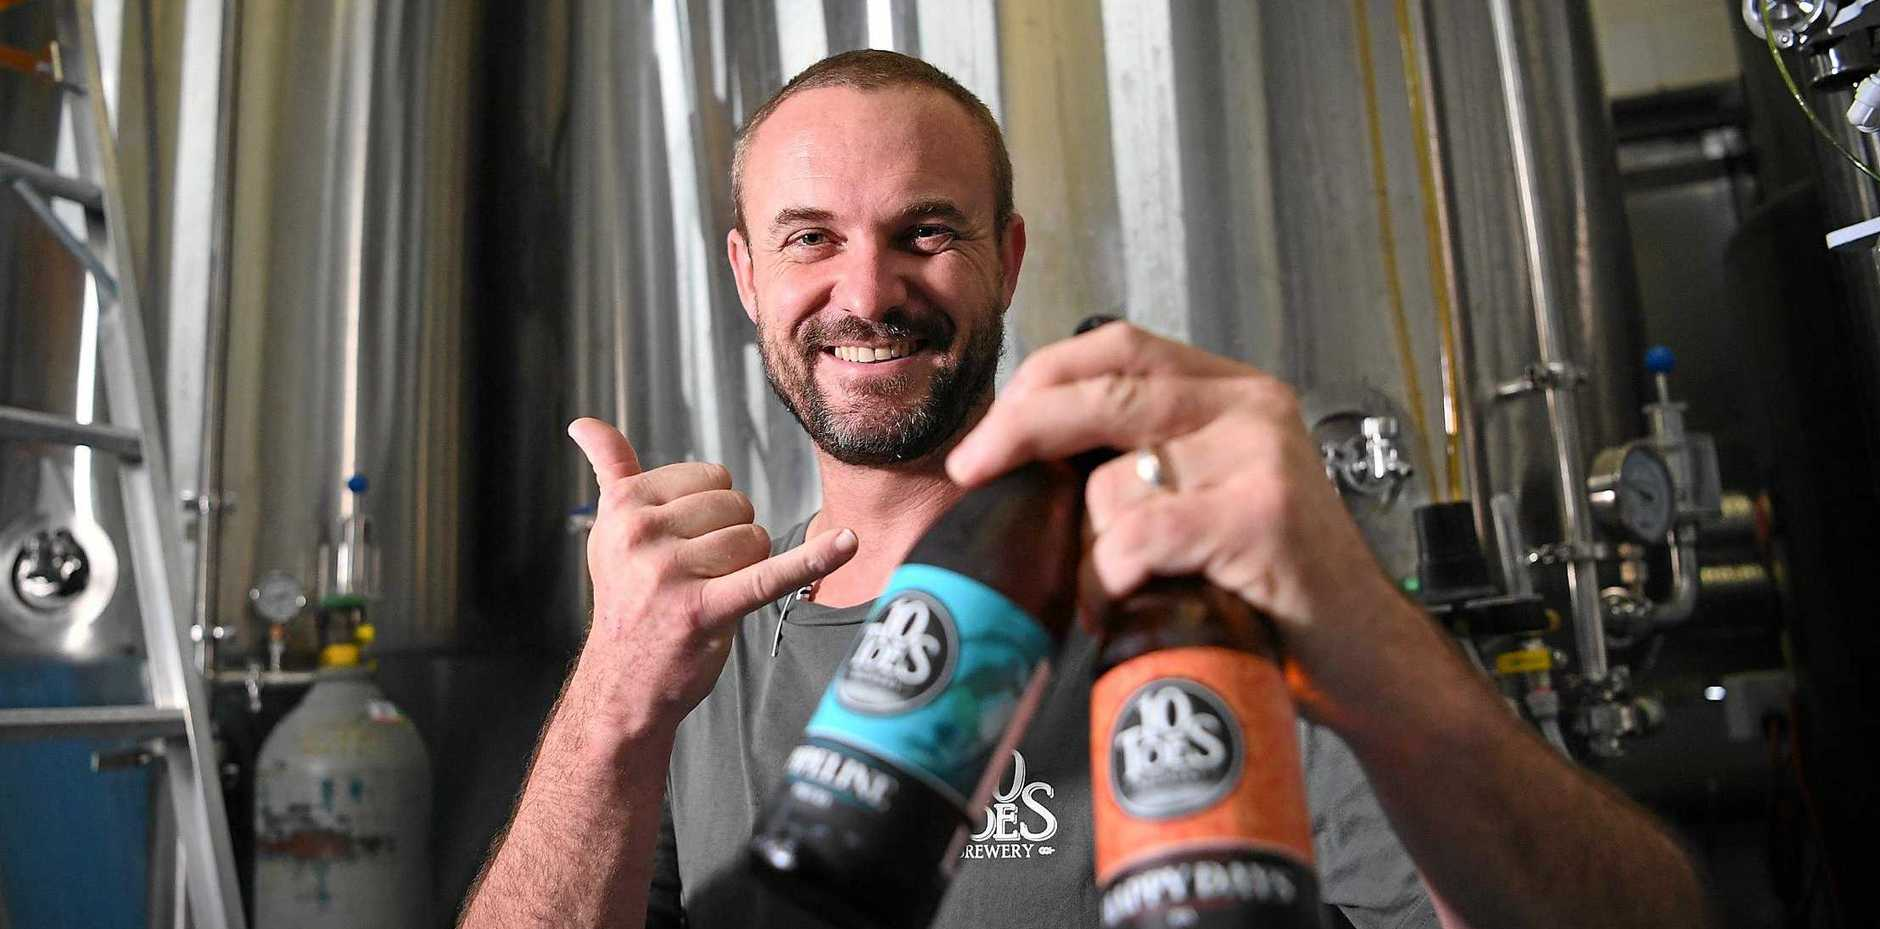 10 Toes Brewery owner Rupert Hall has big plans for the business.